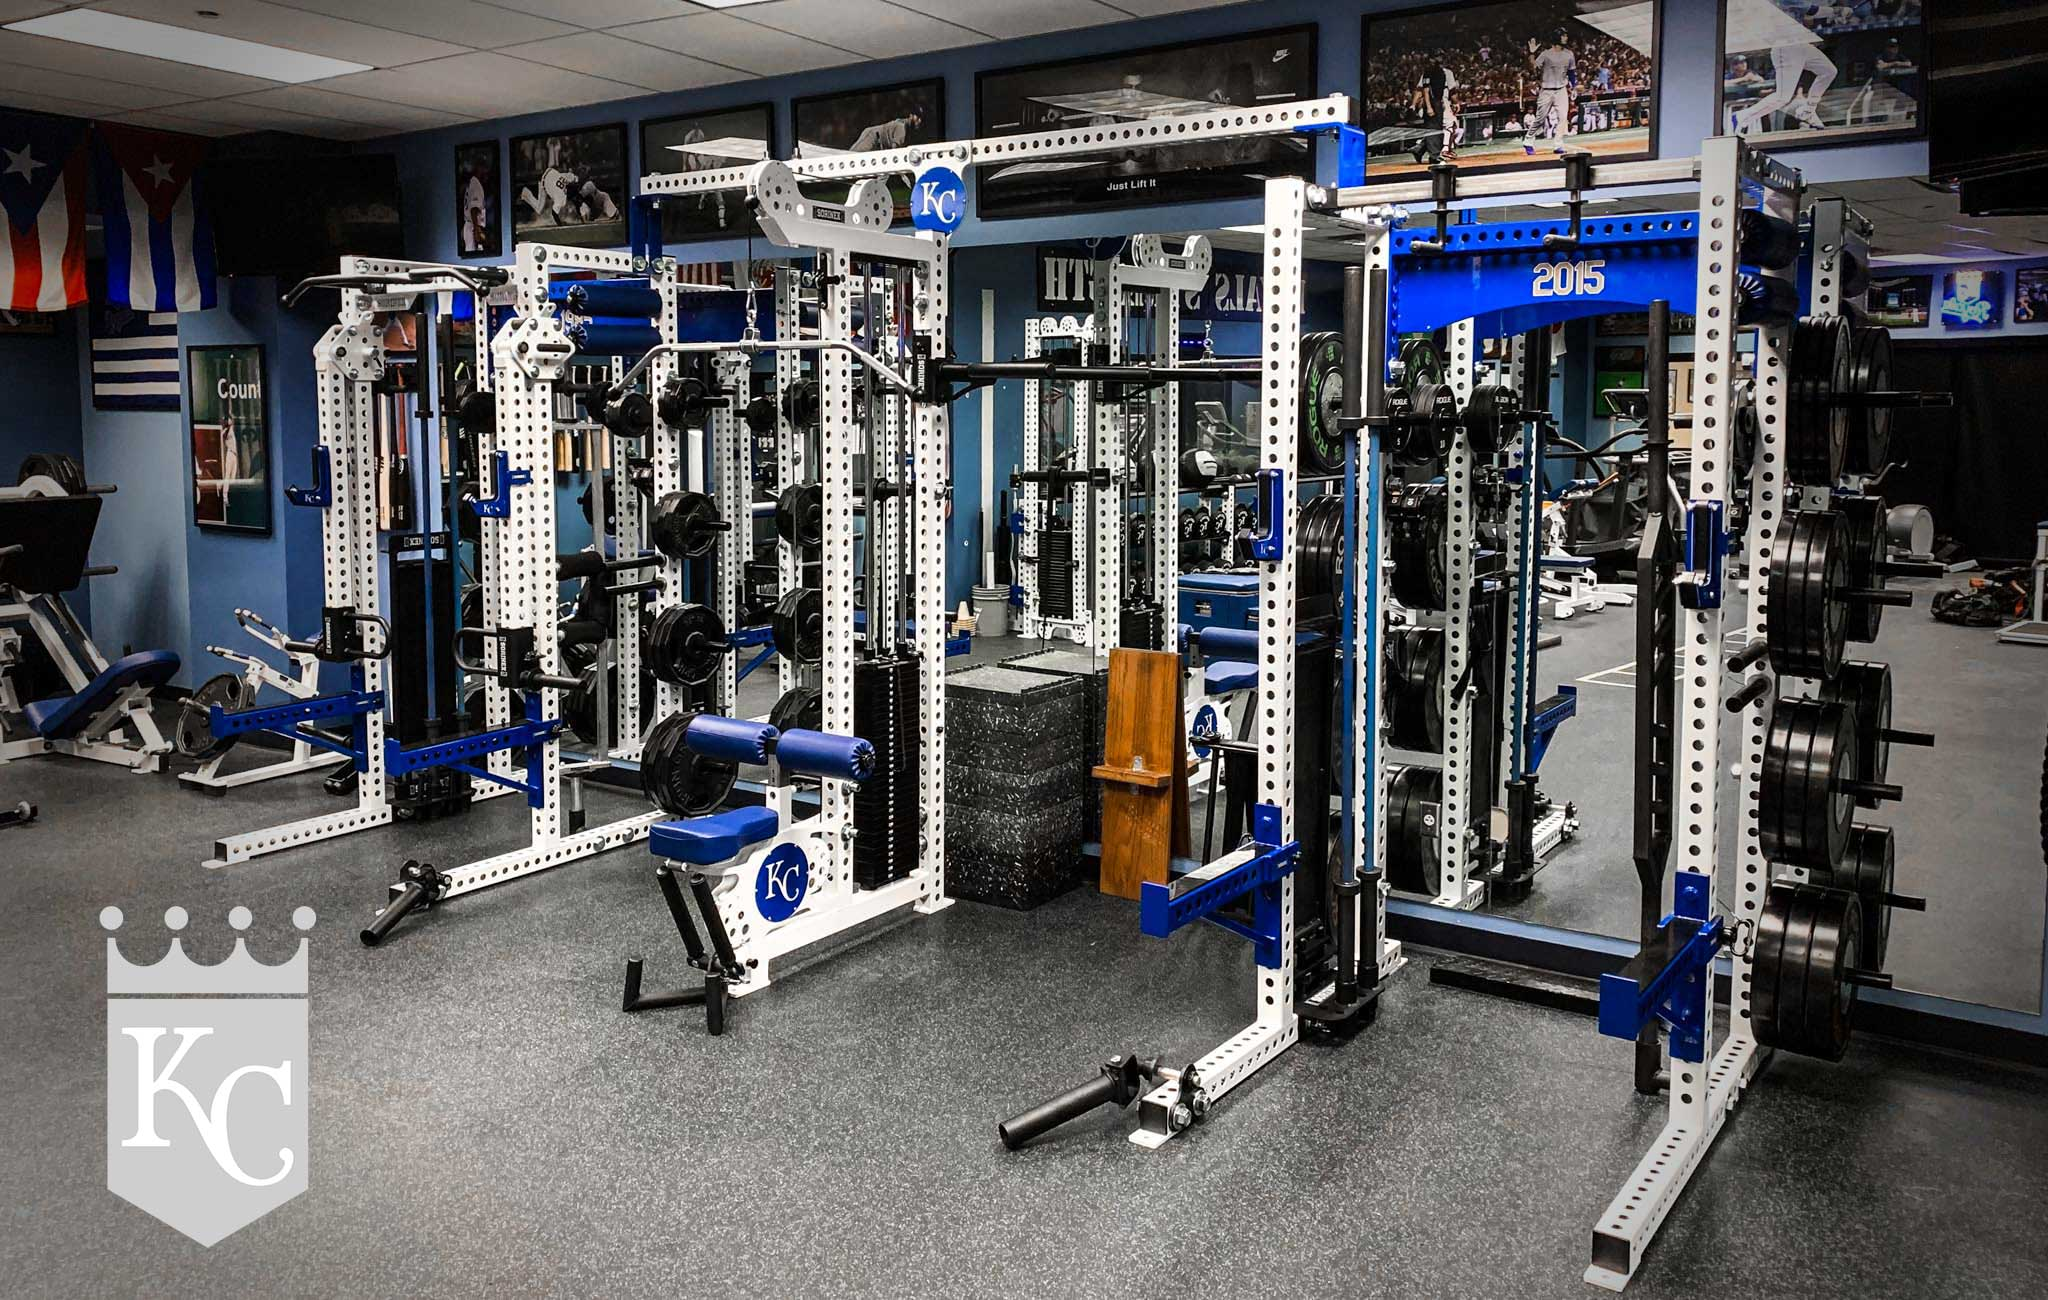 Kansas City Royals Sorinex strength and conditioning facility